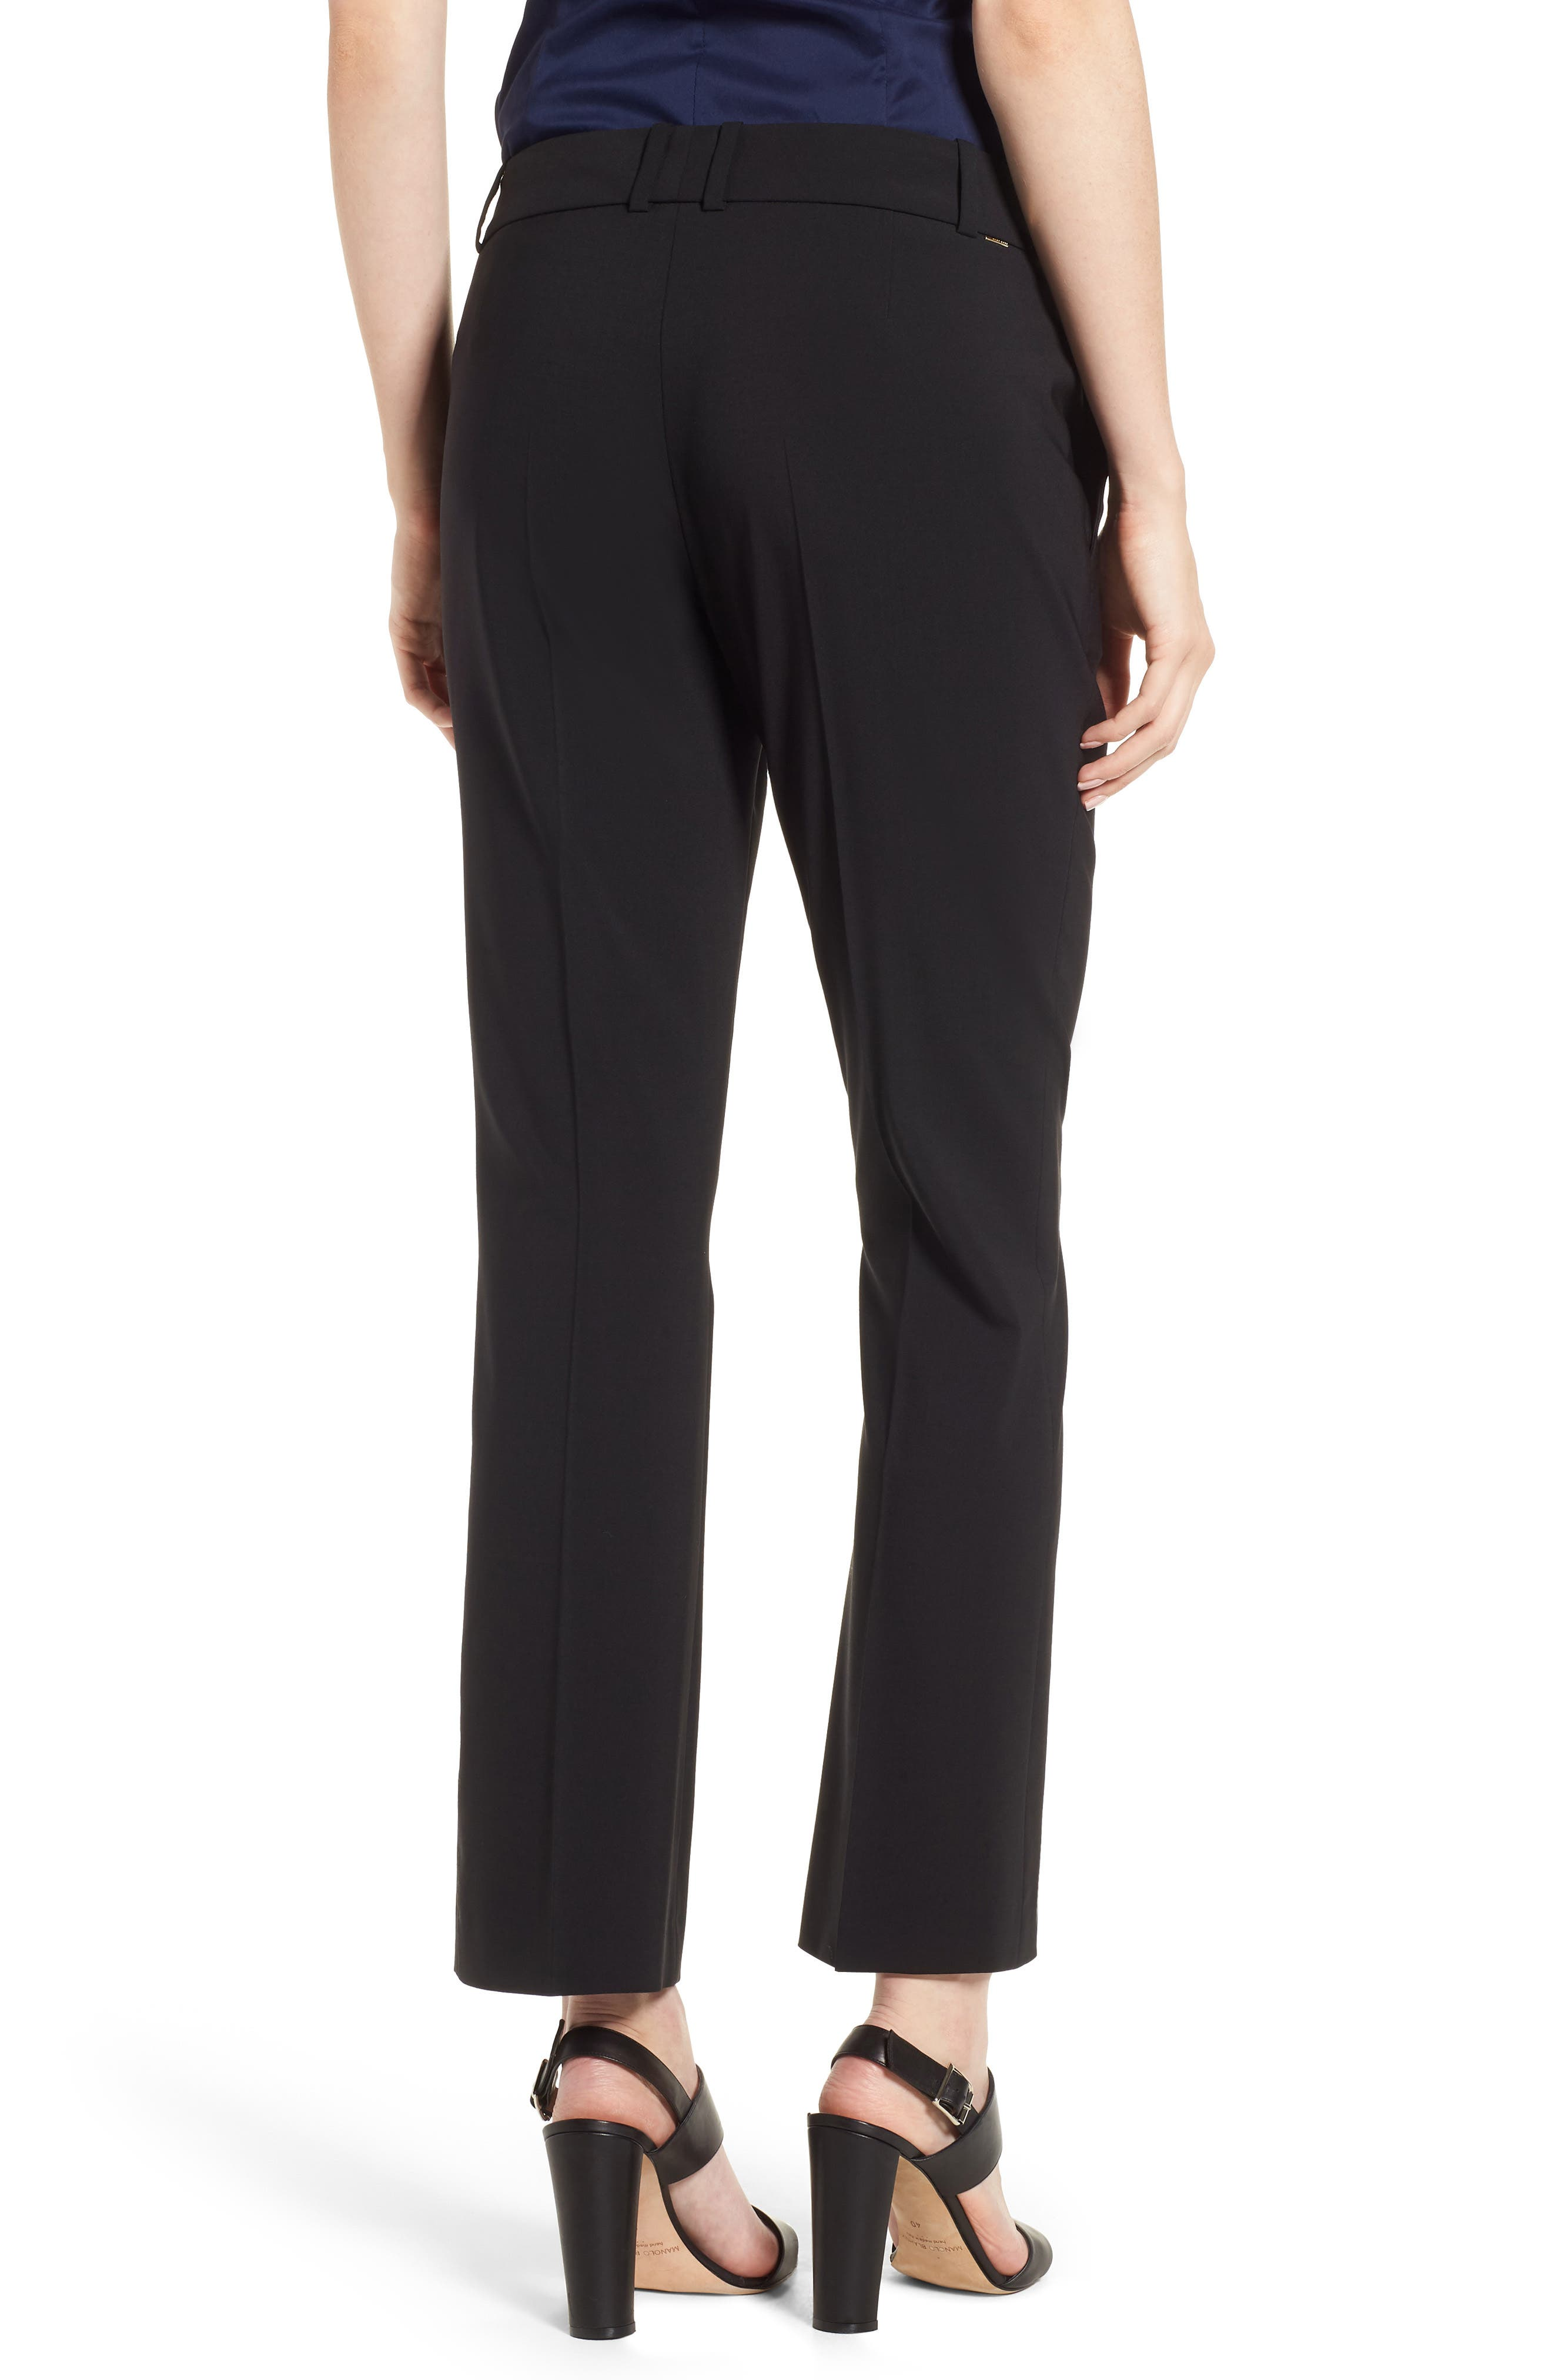 Talenara Tropical Stretch Wool Ankle Trousers,                             Alternate thumbnail 2, color,                             001